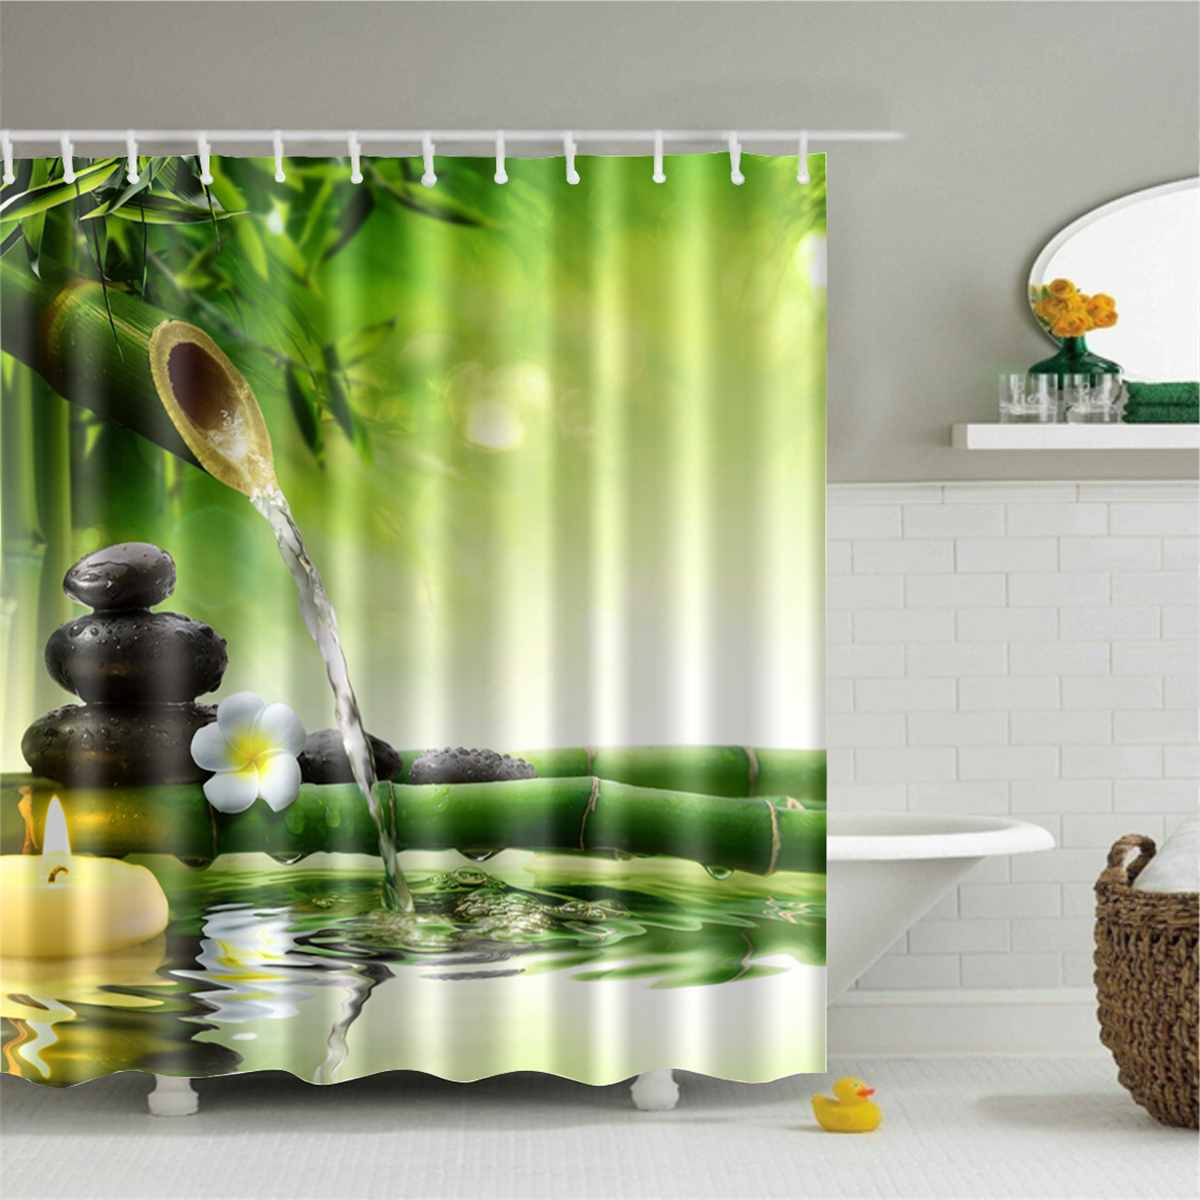 180x180cm Bamboo Flowers Printed 3d Bath Curtains Waterproof Polyester Fabric Washable Bathroom Shower Curtain Screen With Hooks